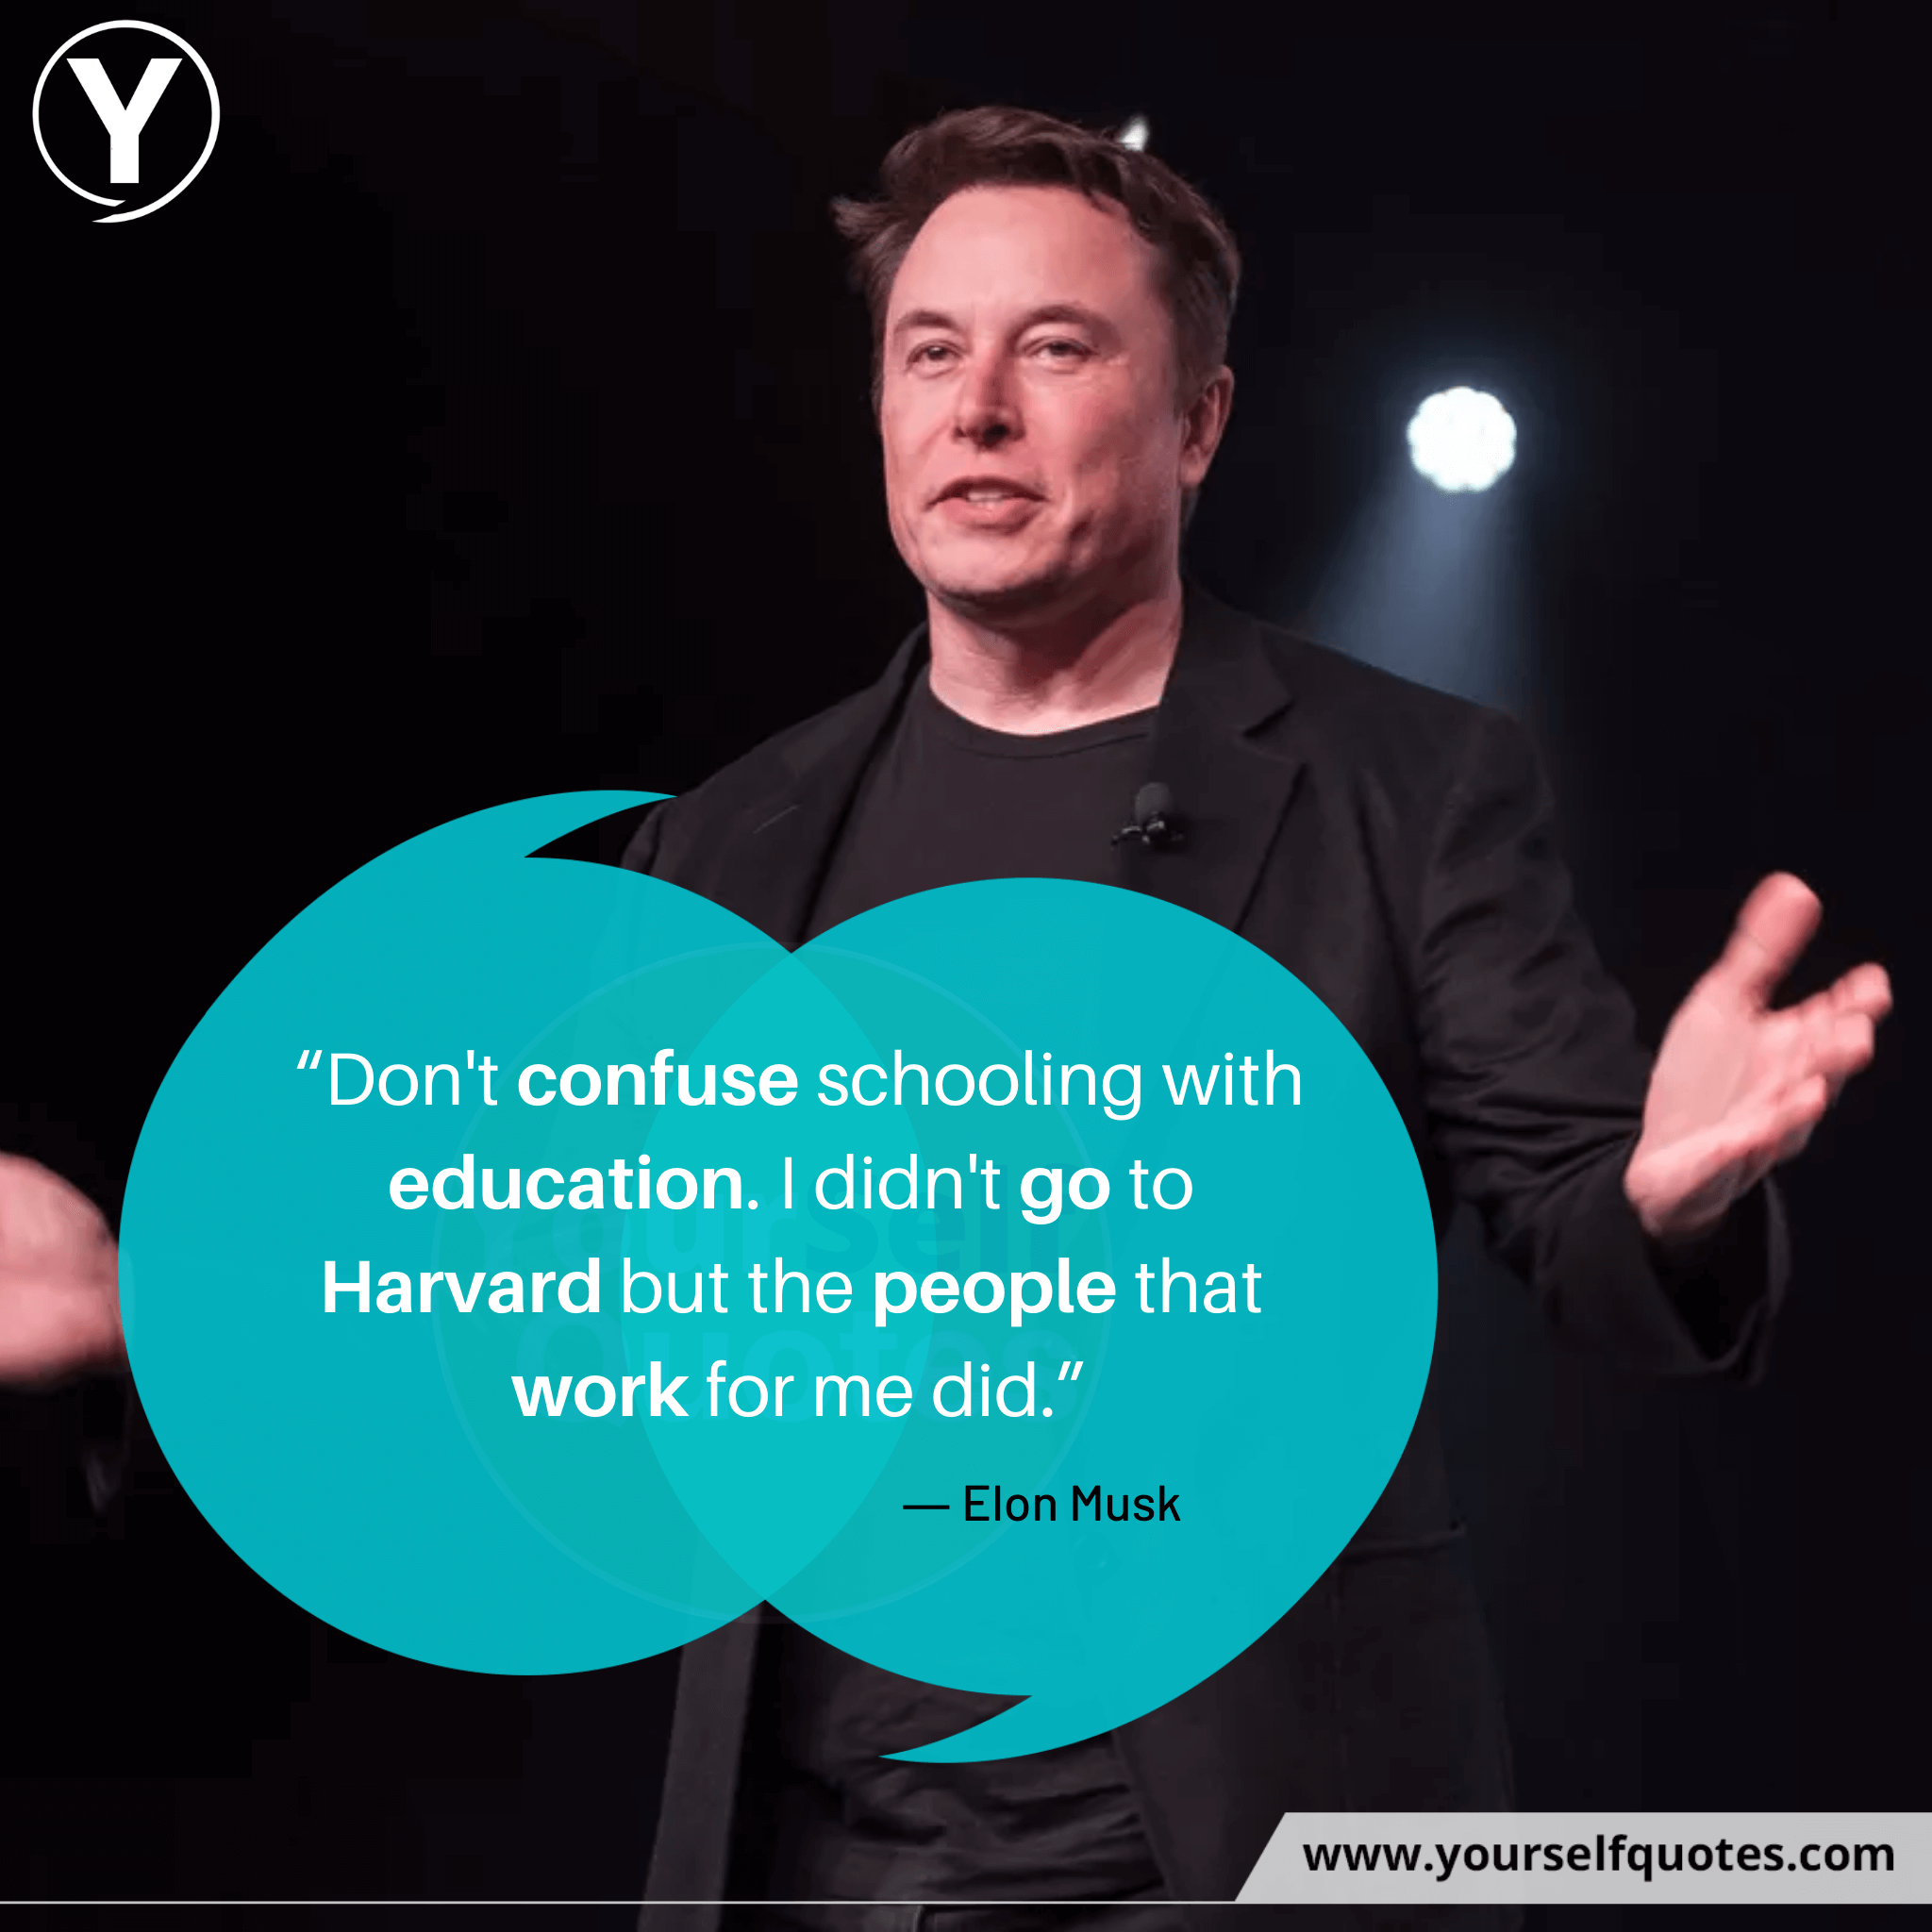 Elon Musk Work Hard Quotes